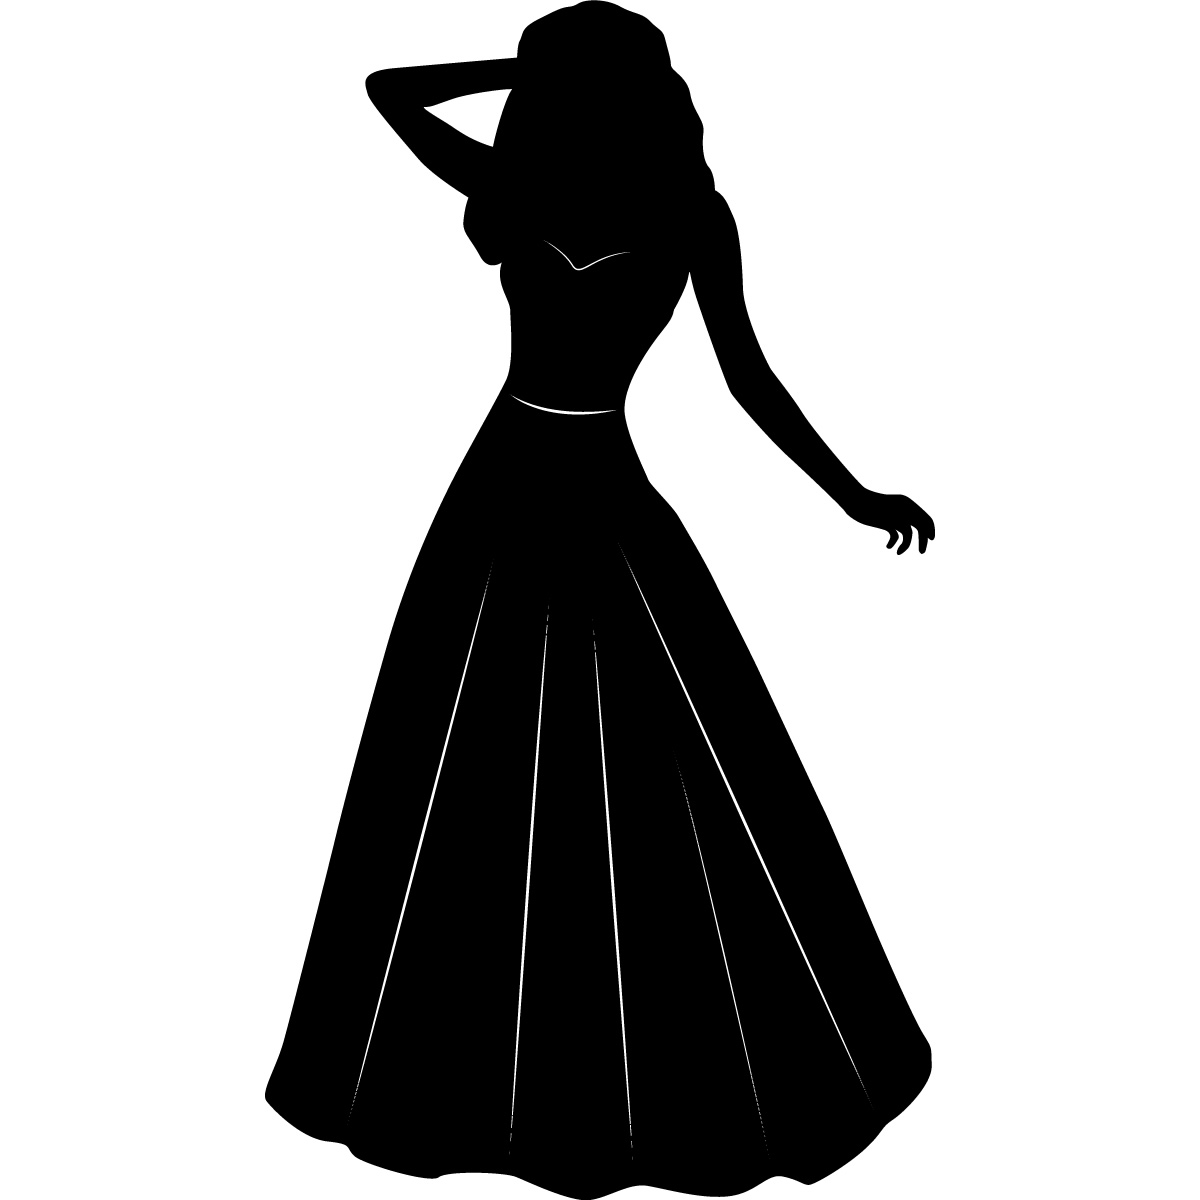 Silhouette Of A Woman In A Dress   Clipart Best